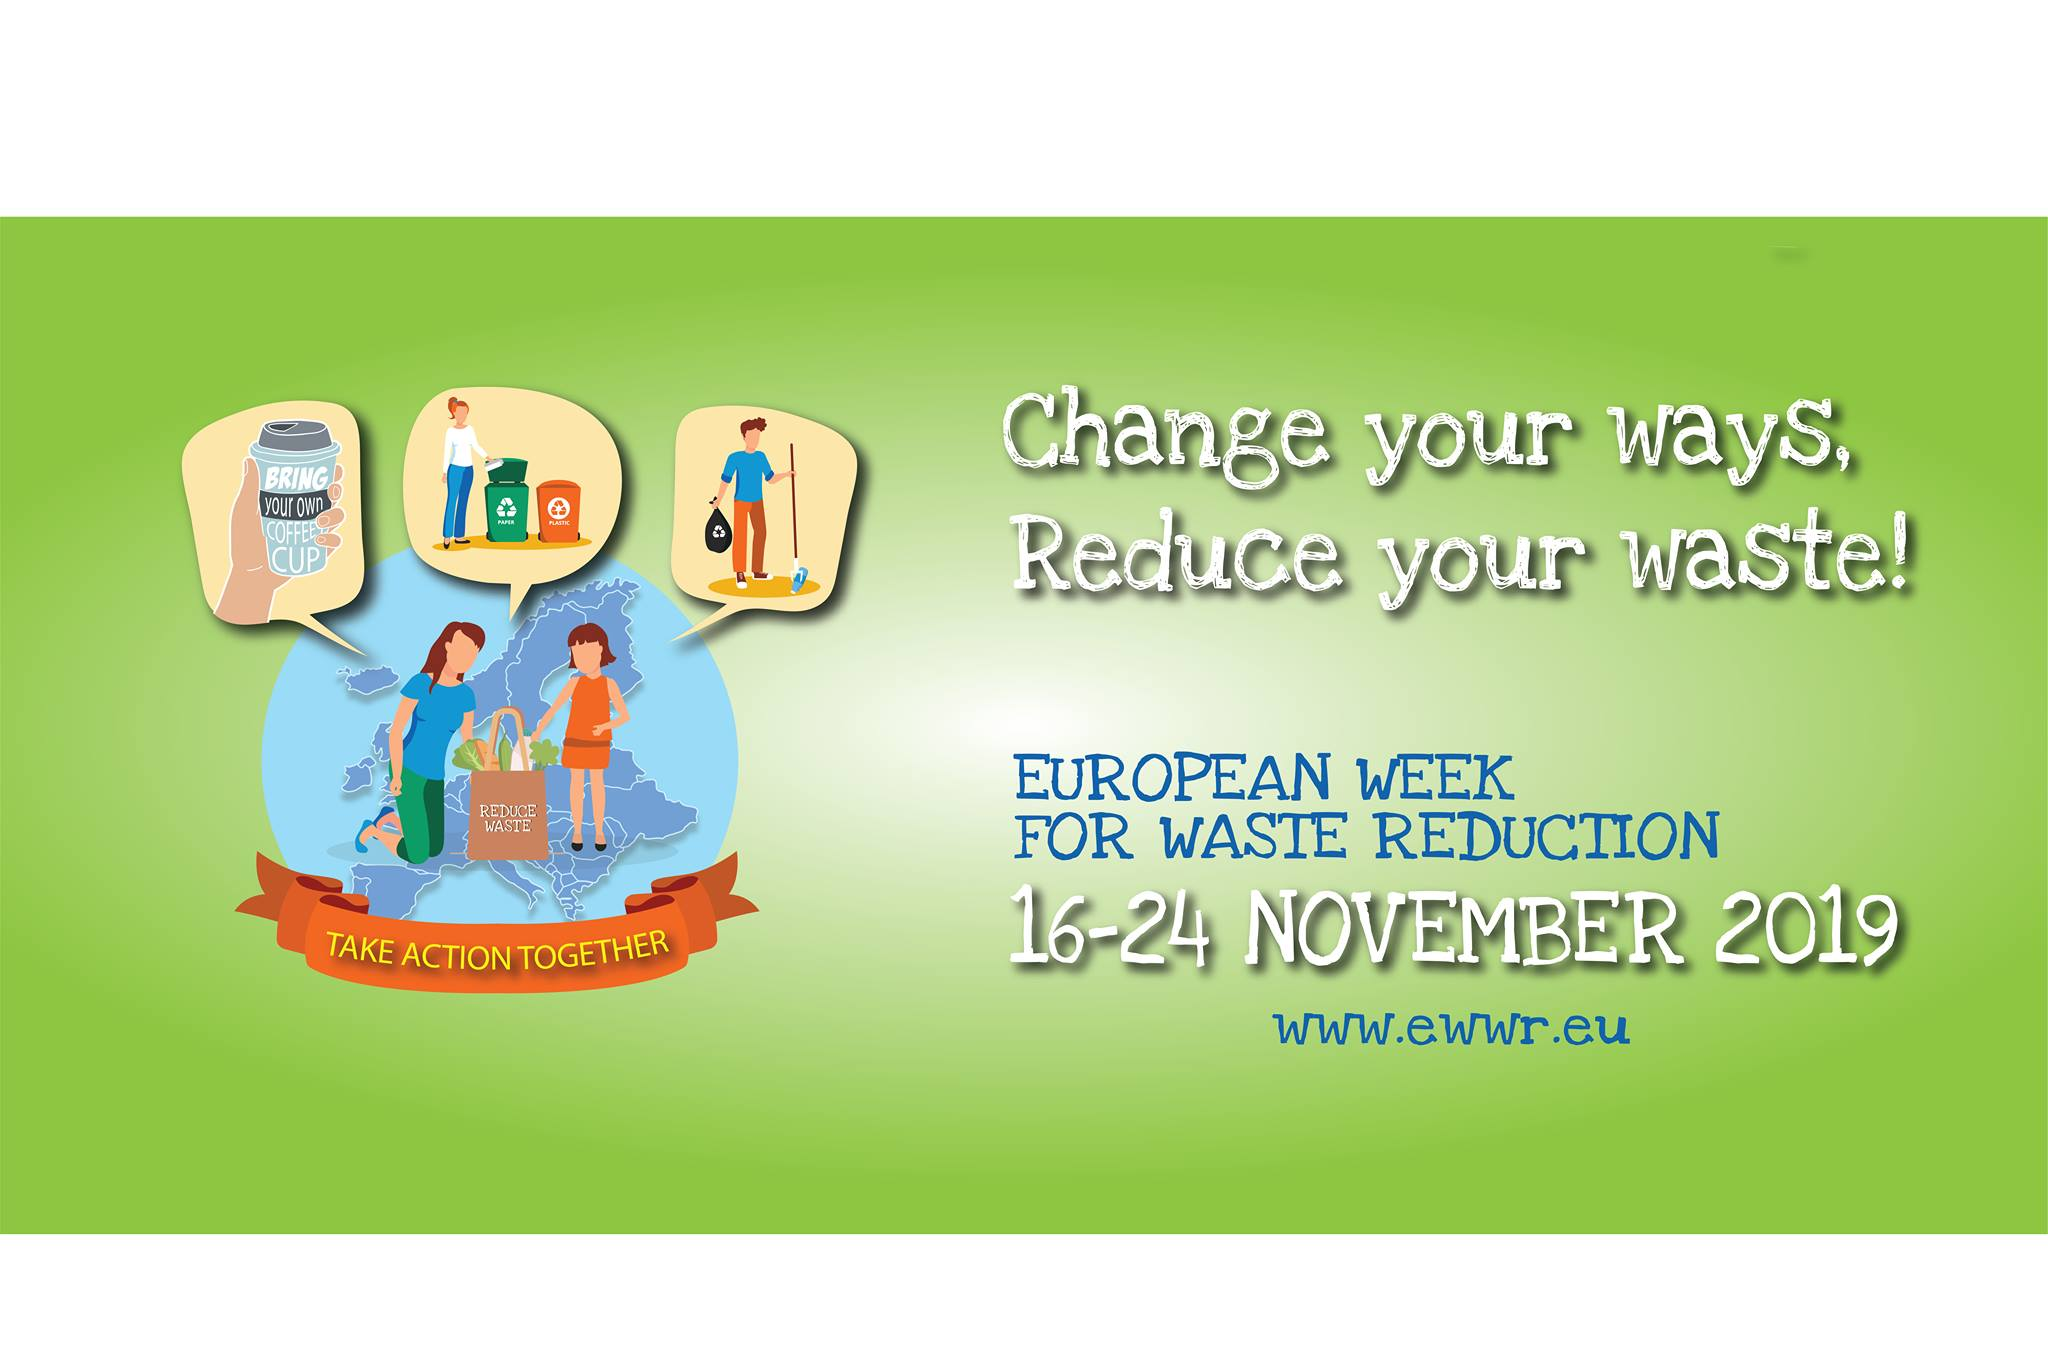 European Week for Waste Reduction visual